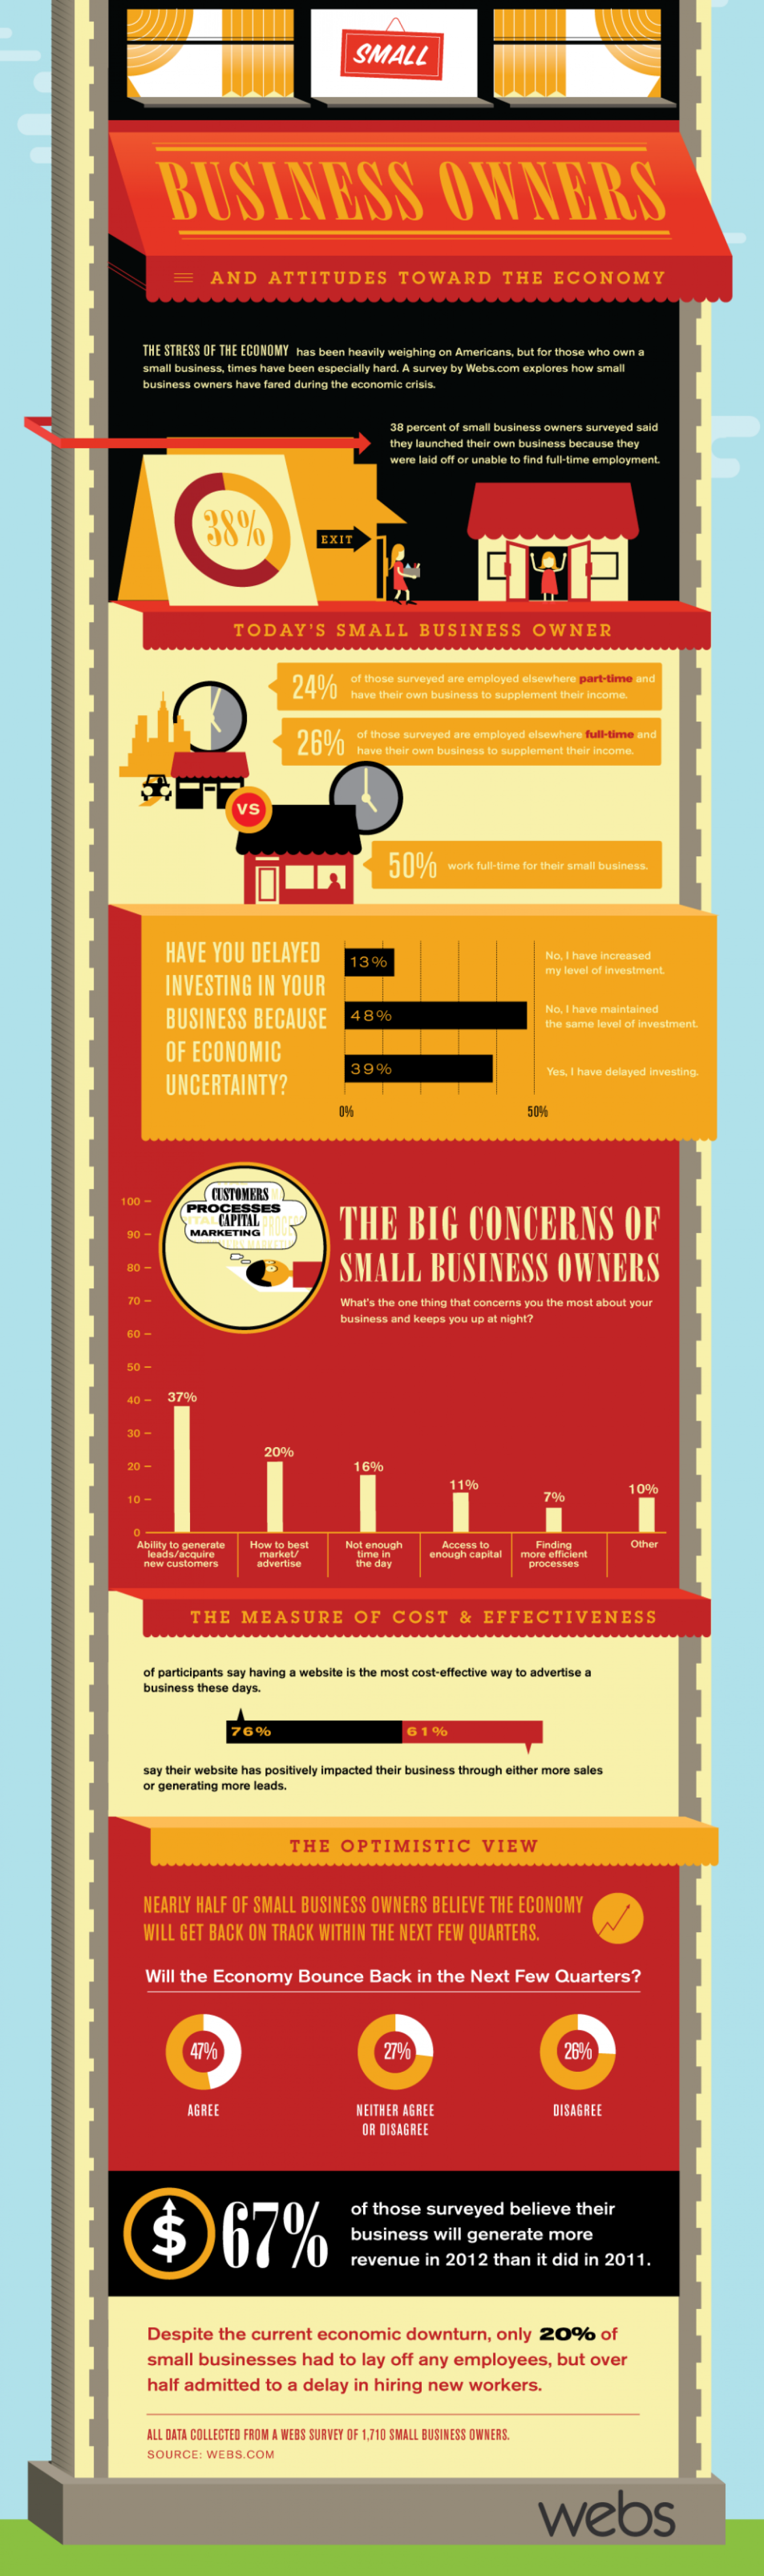 Business Owners and Attitudes Toward The Economy Infographic